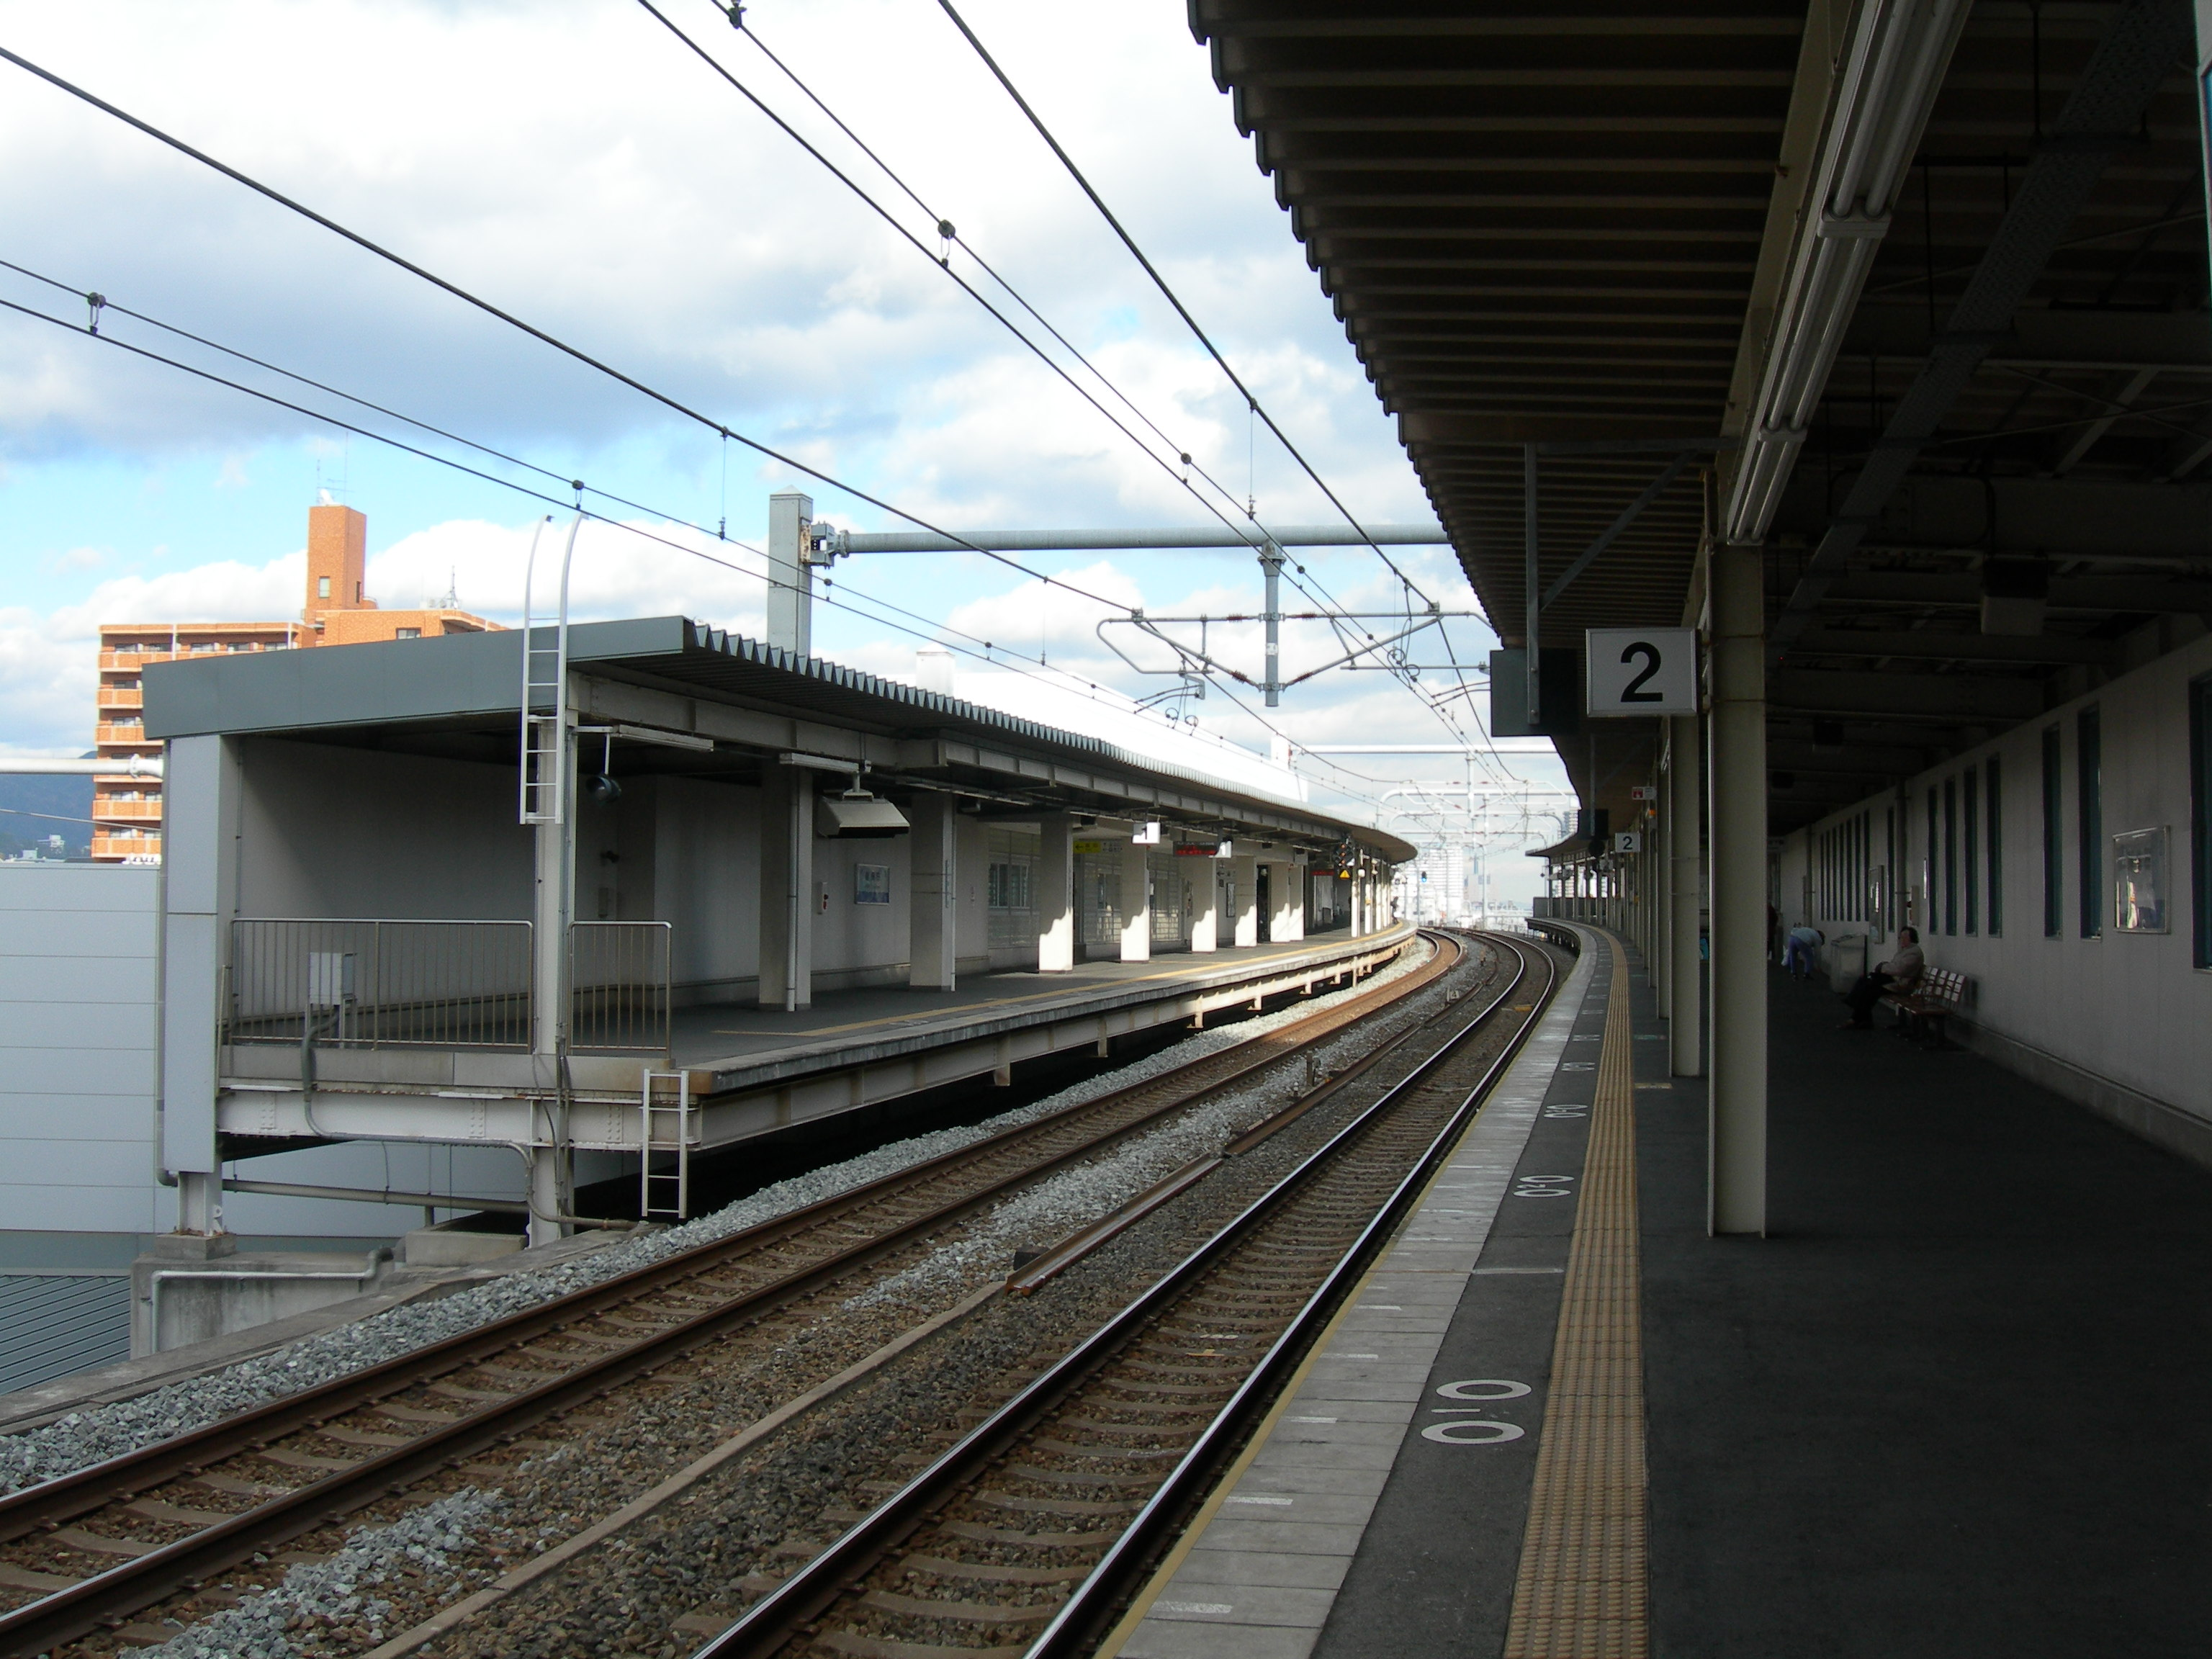 https://upload.wikimedia.org/wikipedia/commons/0/03/Shinnagata-StationPlatform.JPG